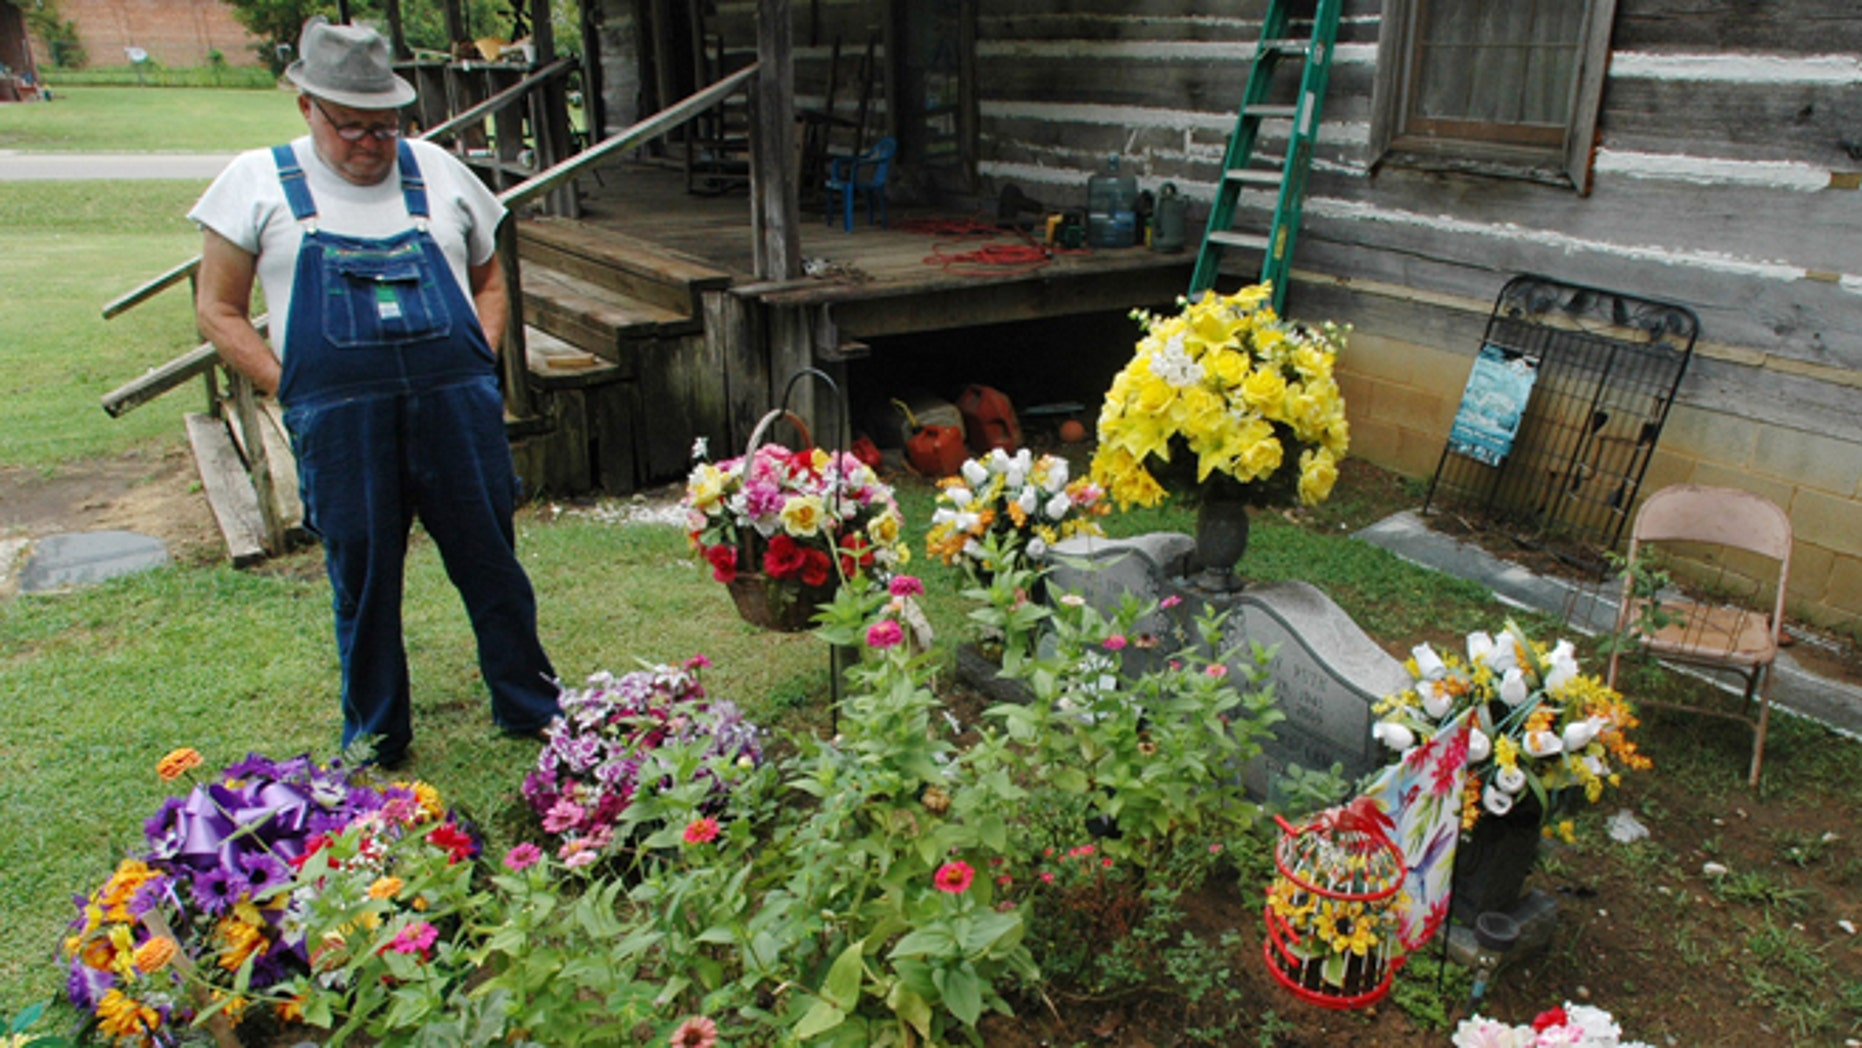 Aug. 10, 2012: In this file photo, James Davis, 73, stands over the grave of his wife, Patsy, in the front yard of the home they shared in Stevenson, Ala.